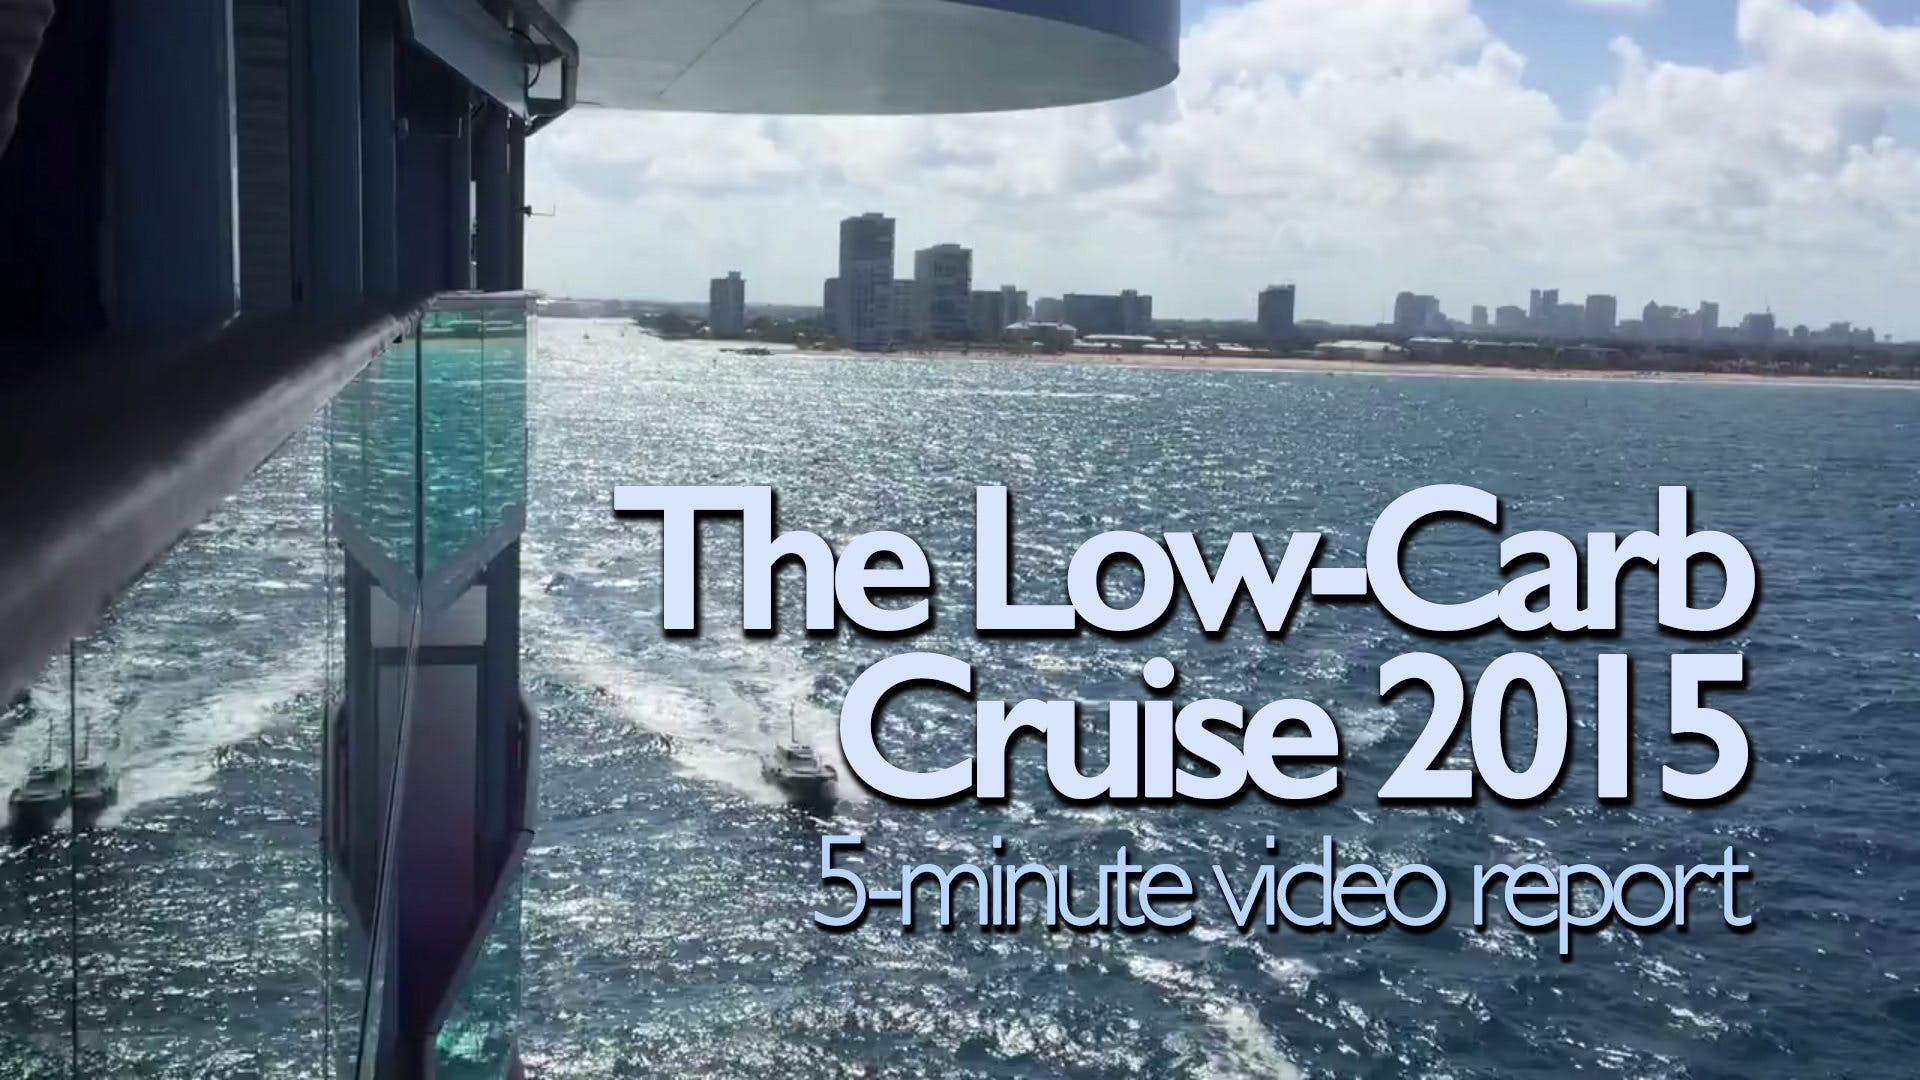 Interviews with Experts and Kids(!) from the Low-Carb Cruise